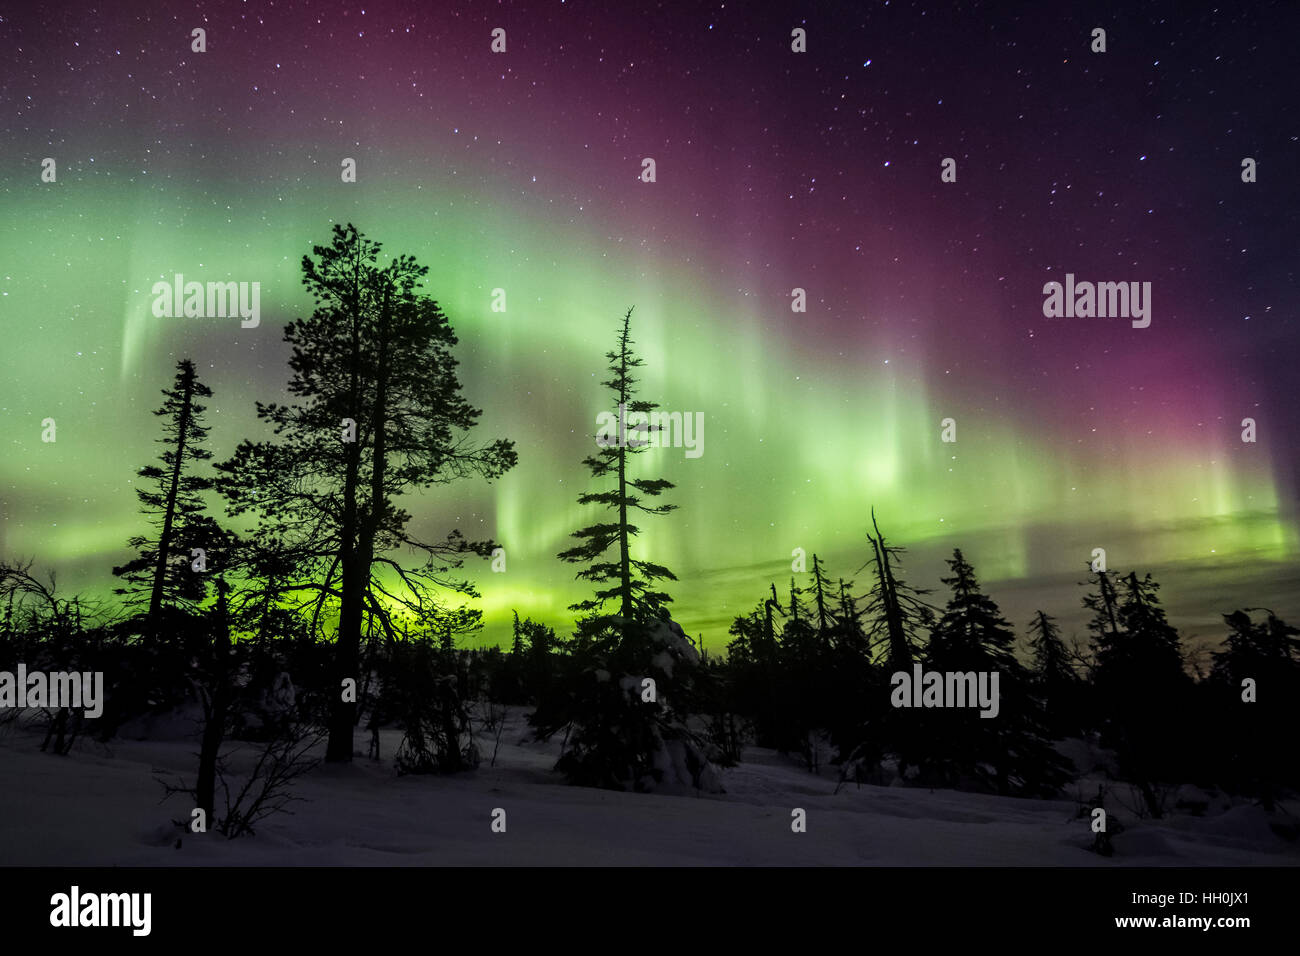 Northern lights in Riisitunturi national park, Finland - Stock Image